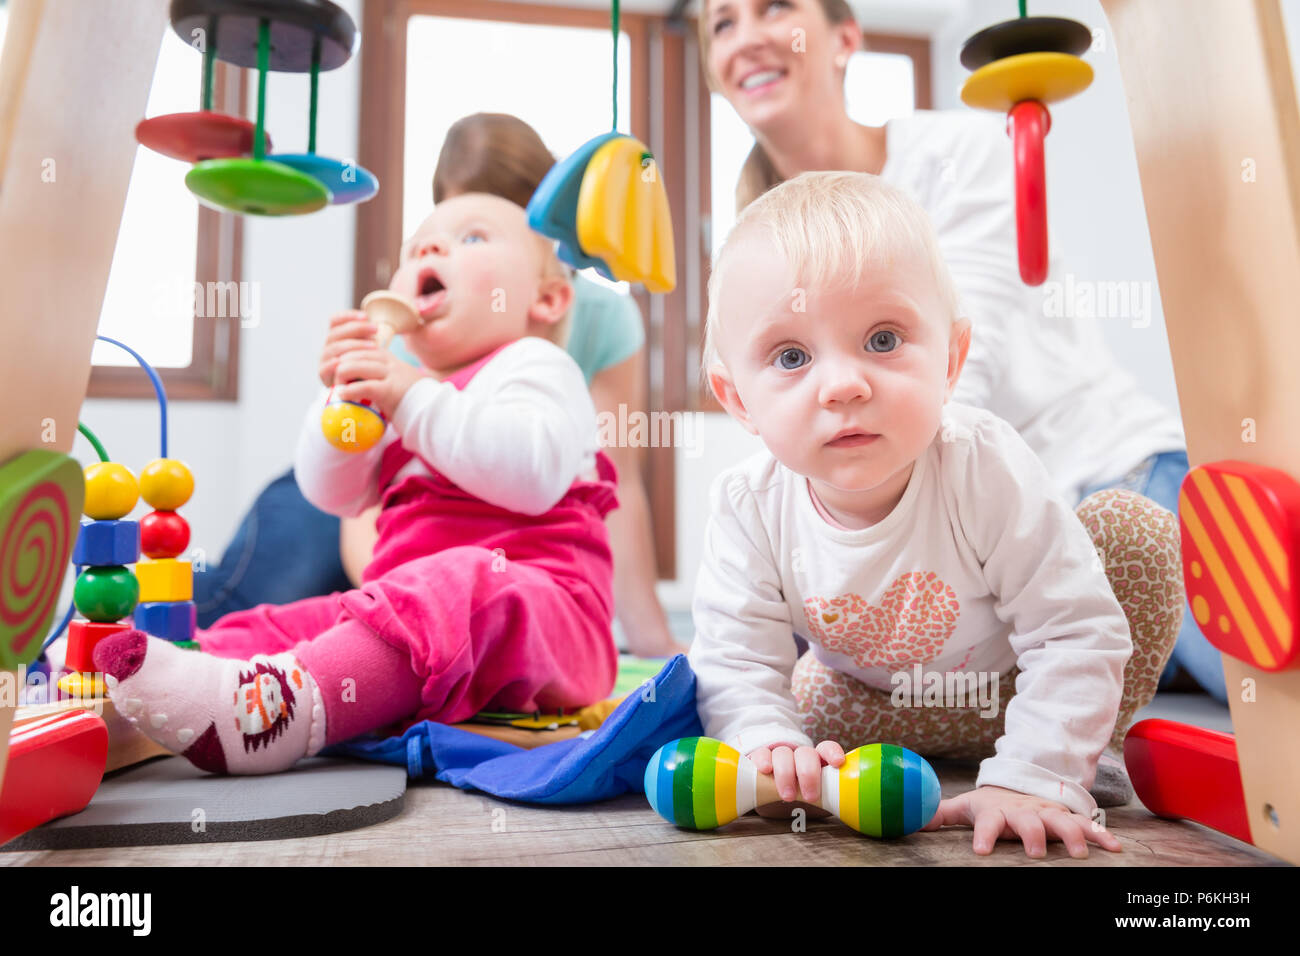 Cute baby girl showing progress and curiosity - Stock Image